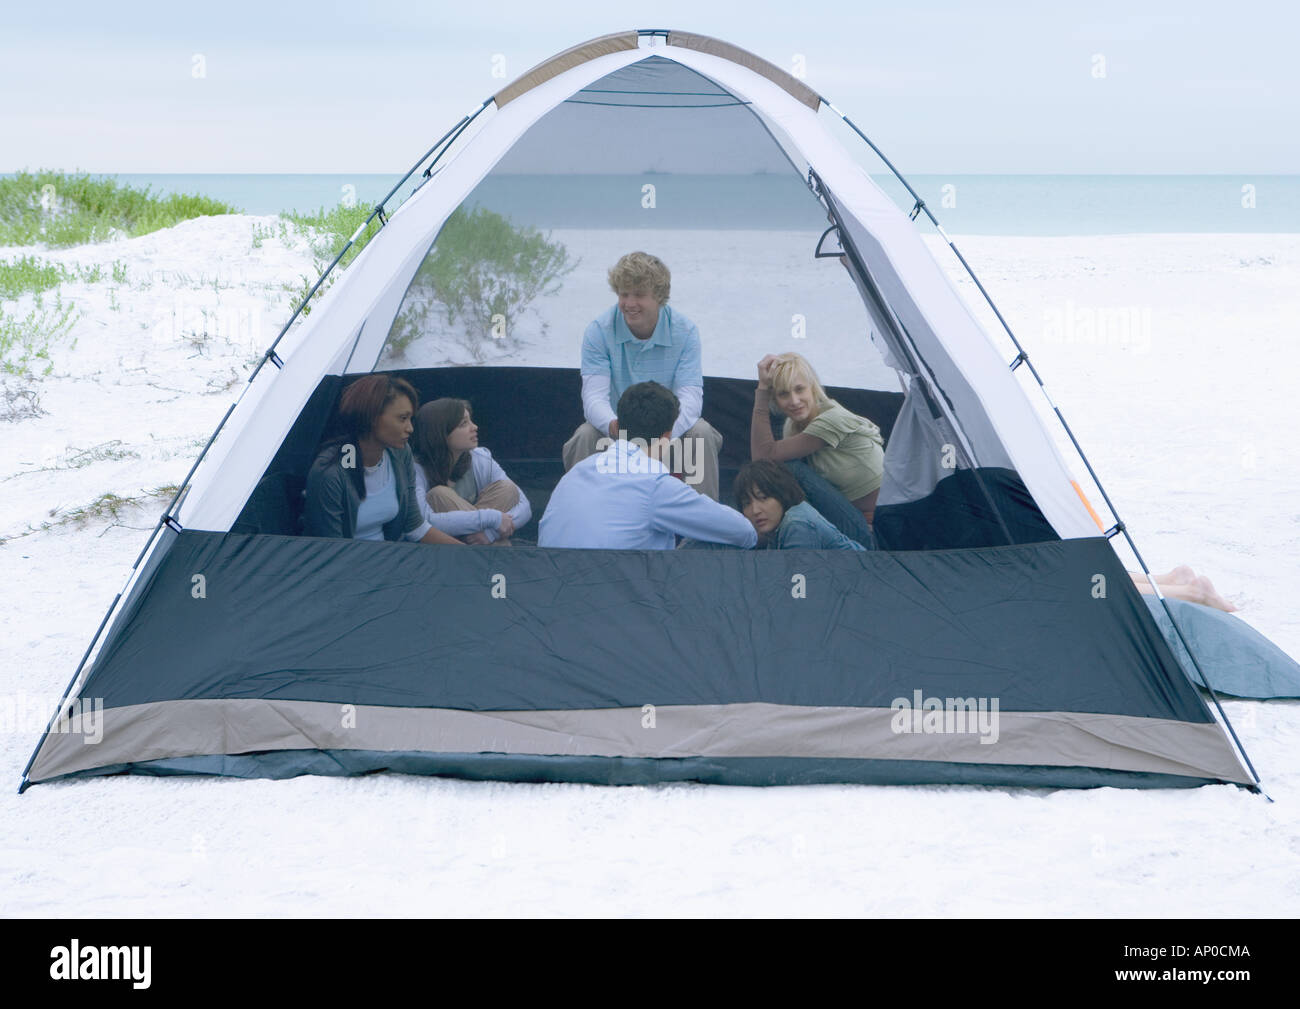 Group of young adults in tent on beach - Stock Image